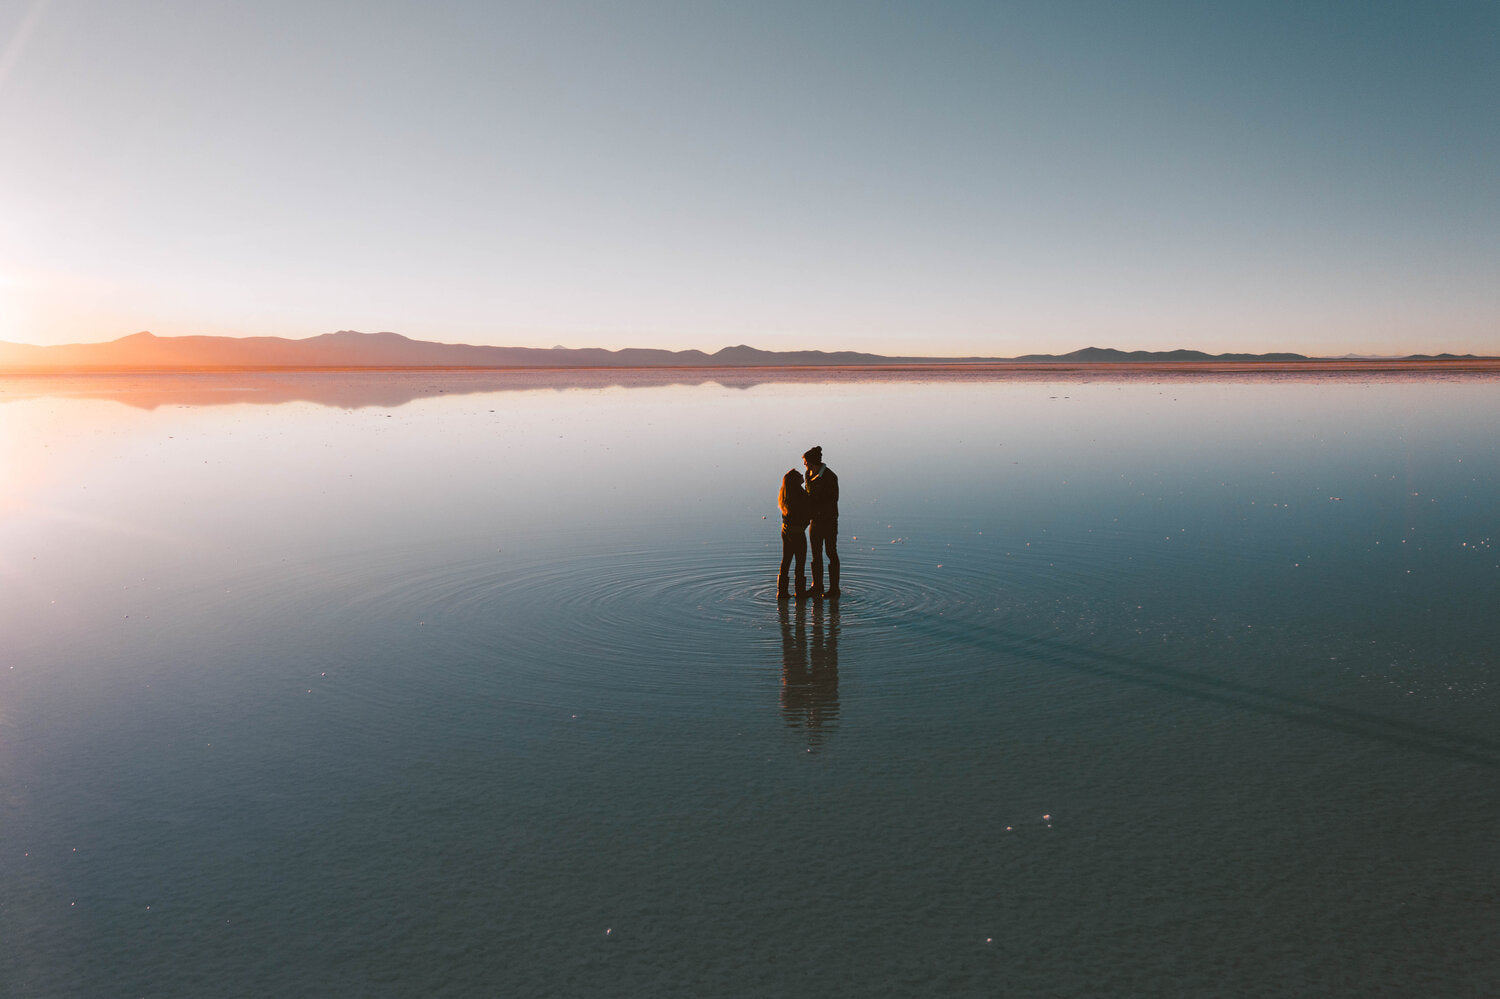 WhatTheChic and LostLeBlanc in the Salt Flats during sunrise, Uyuni, Bolivia